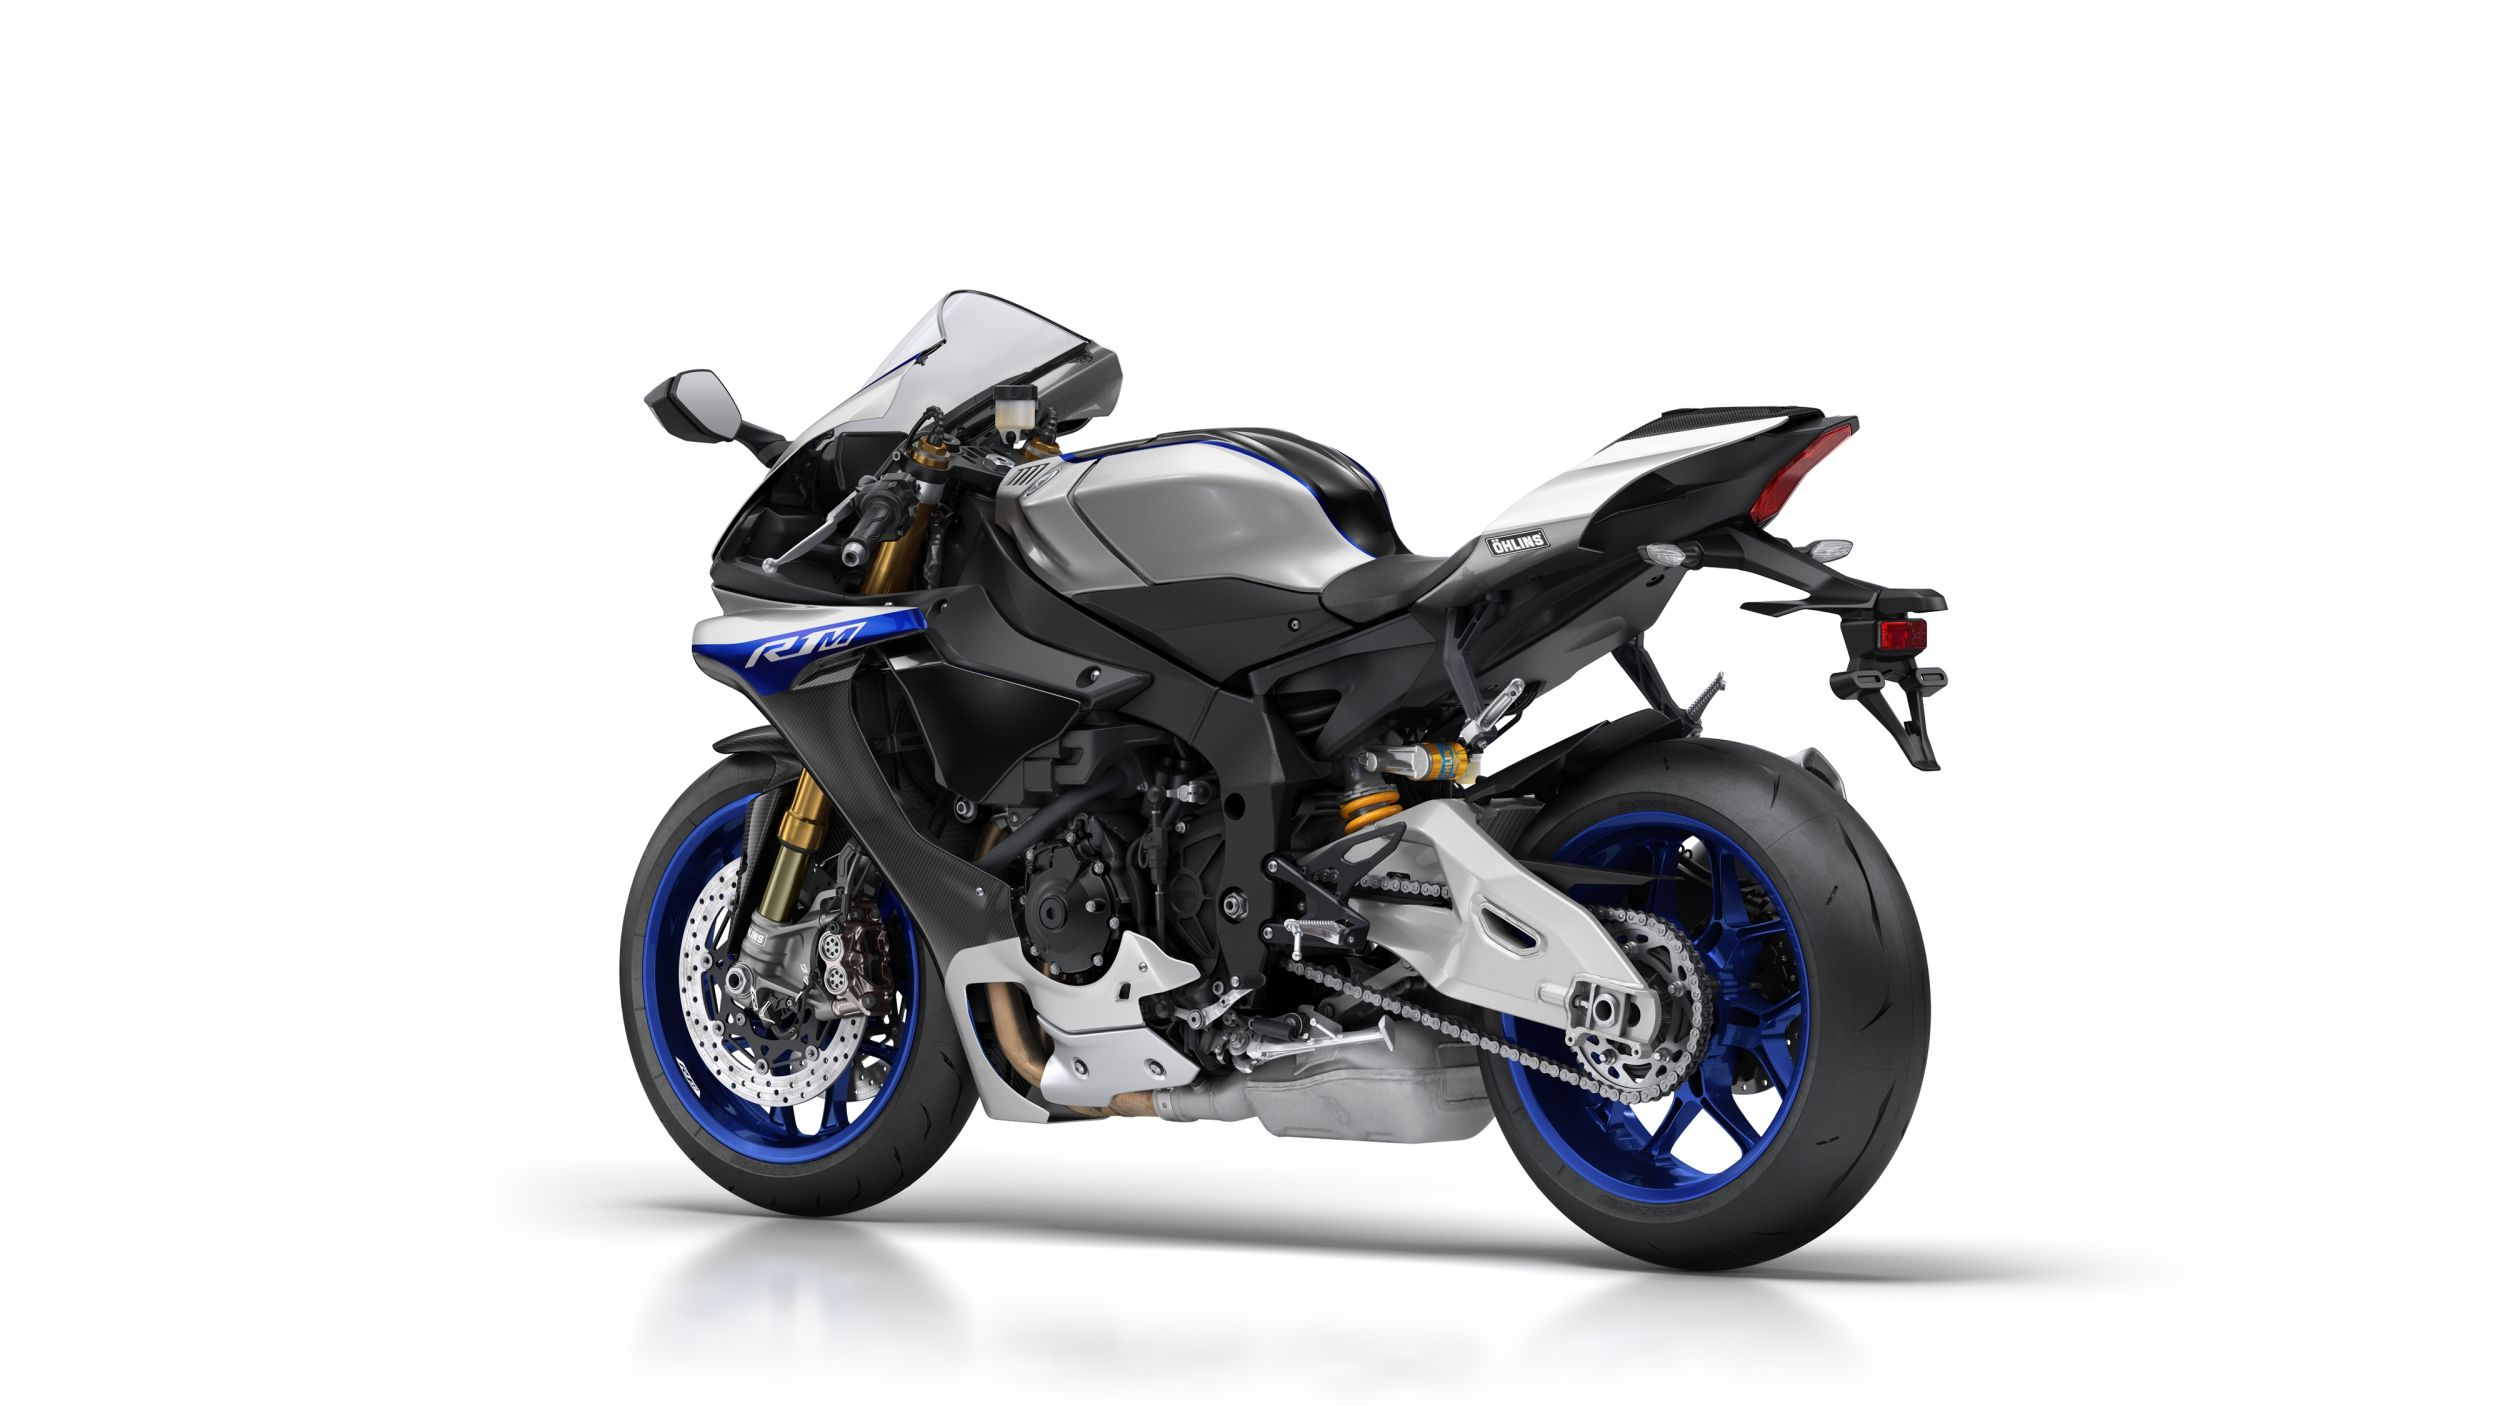 gebrauchte yamaha yzf r1m motorr der kaufen. Black Bedroom Furniture Sets. Home Design Ideas